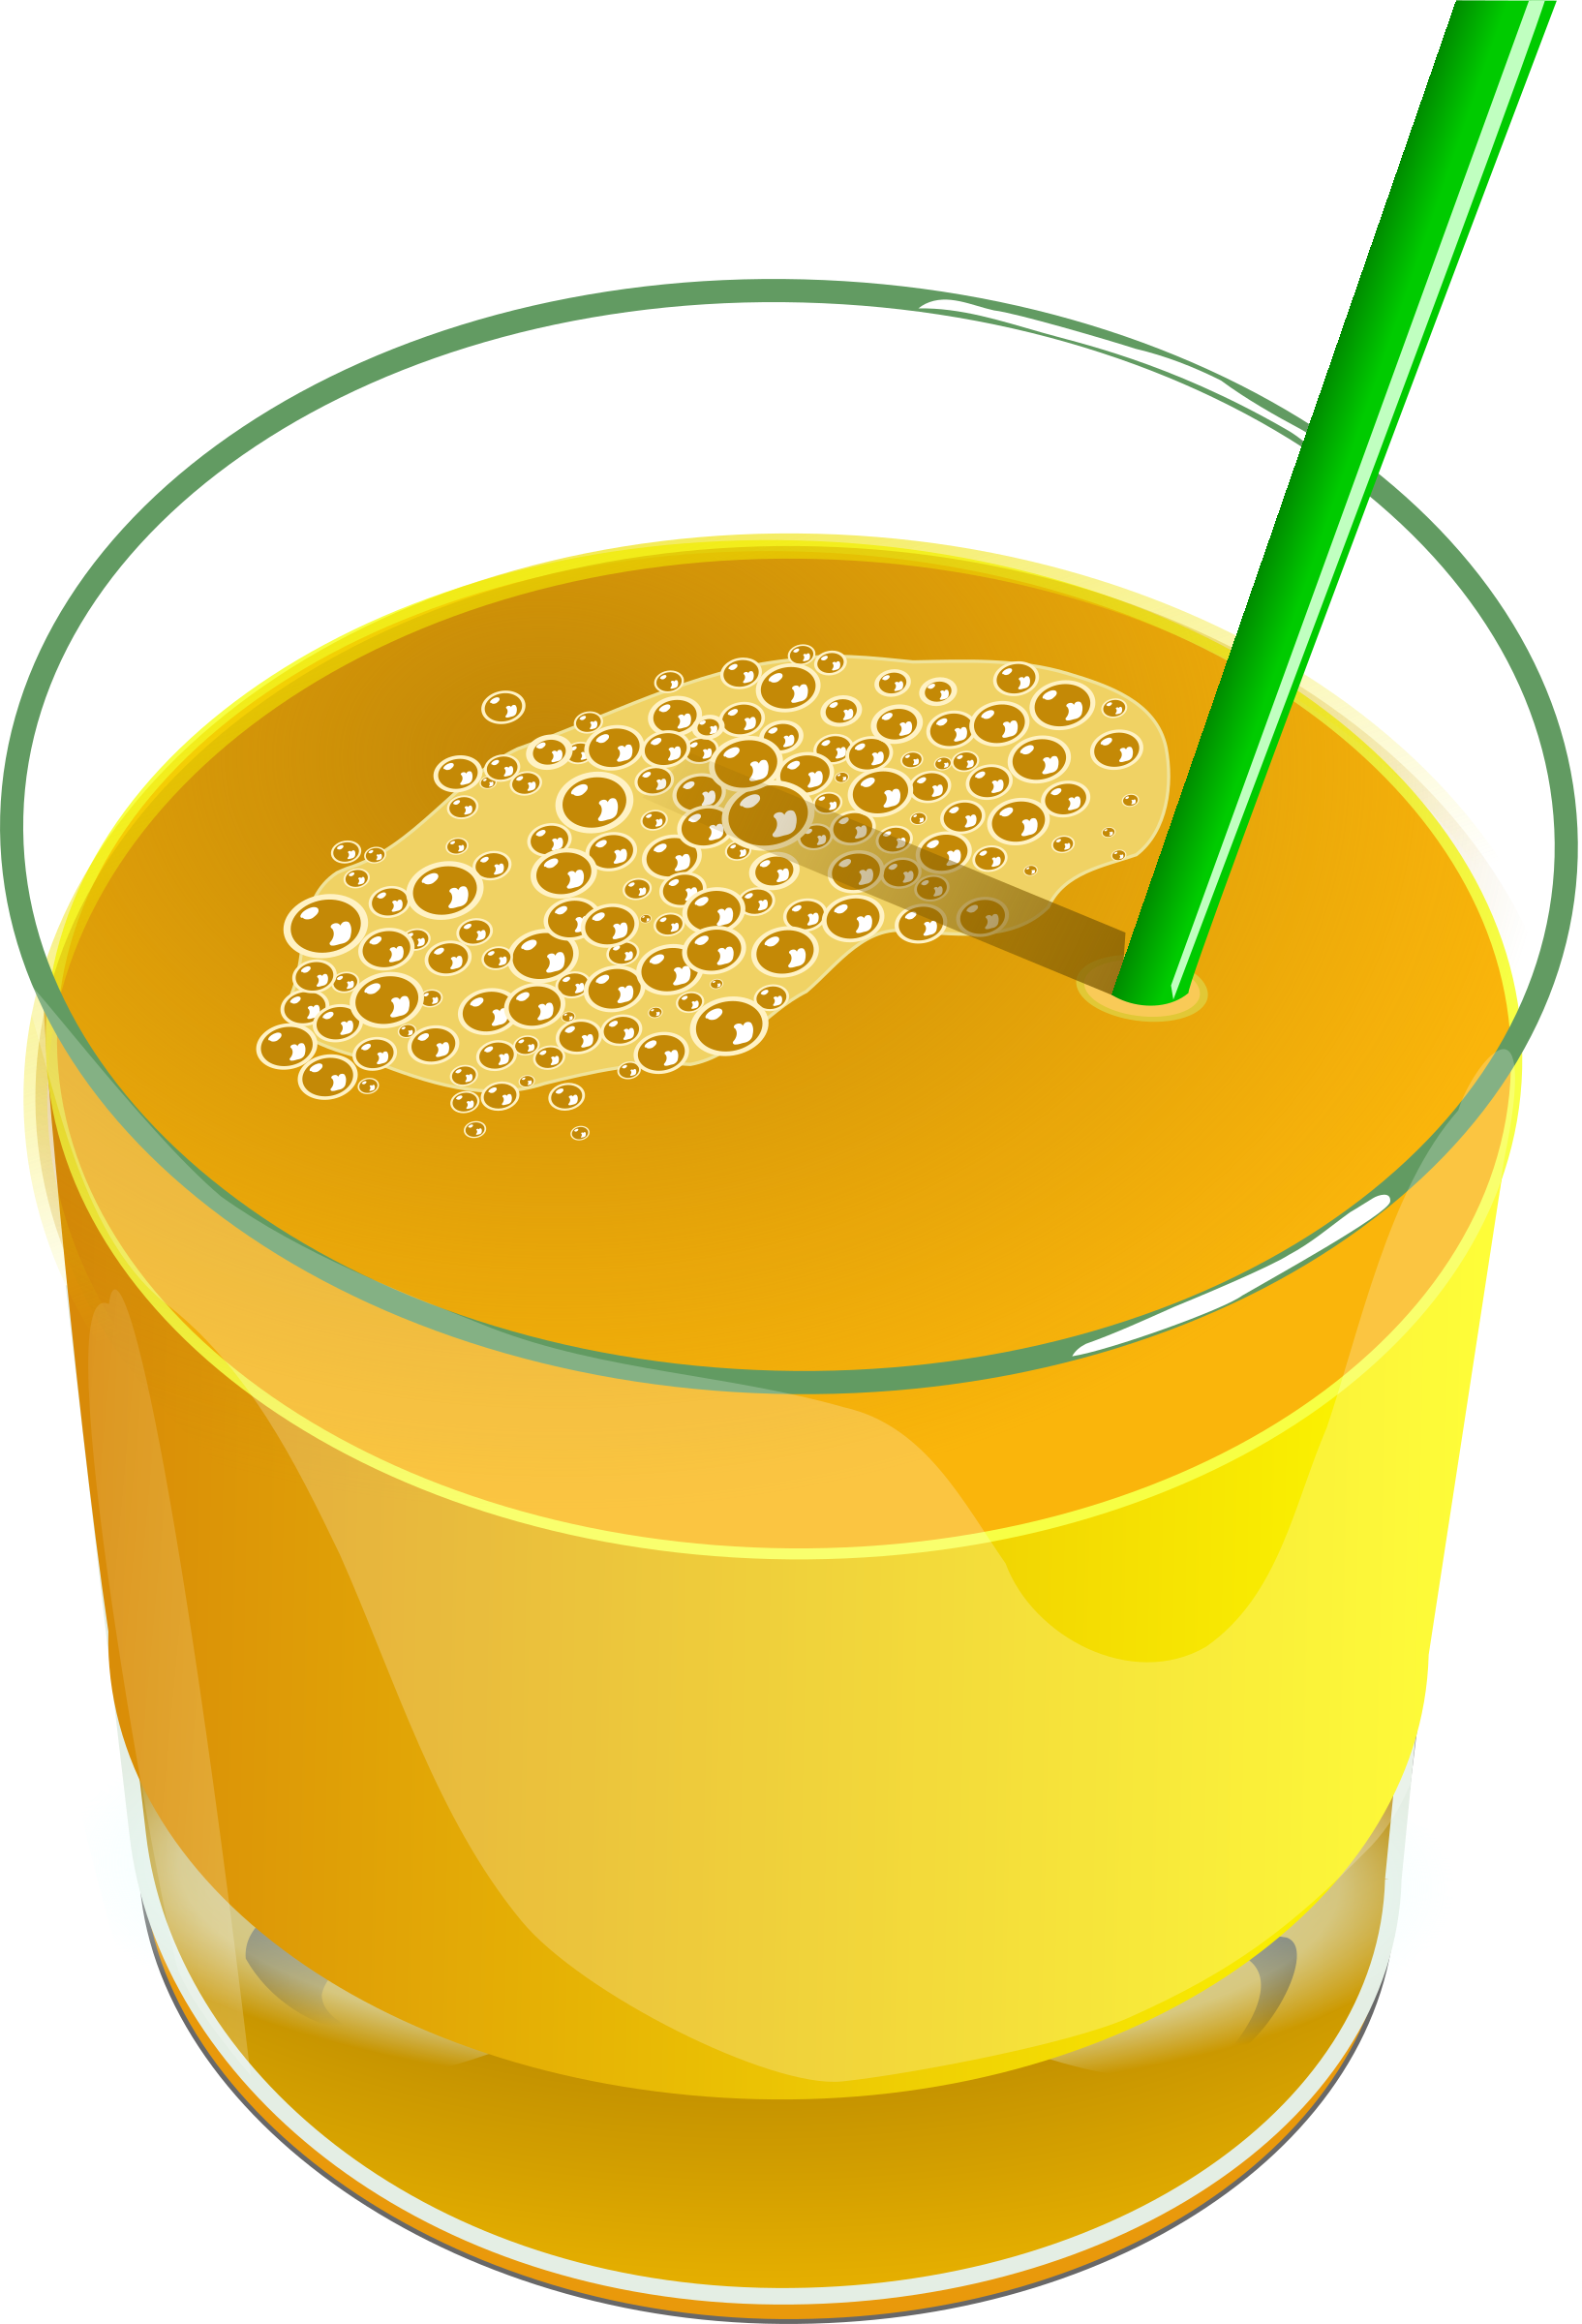 Hair clipart glass. Juice big image png